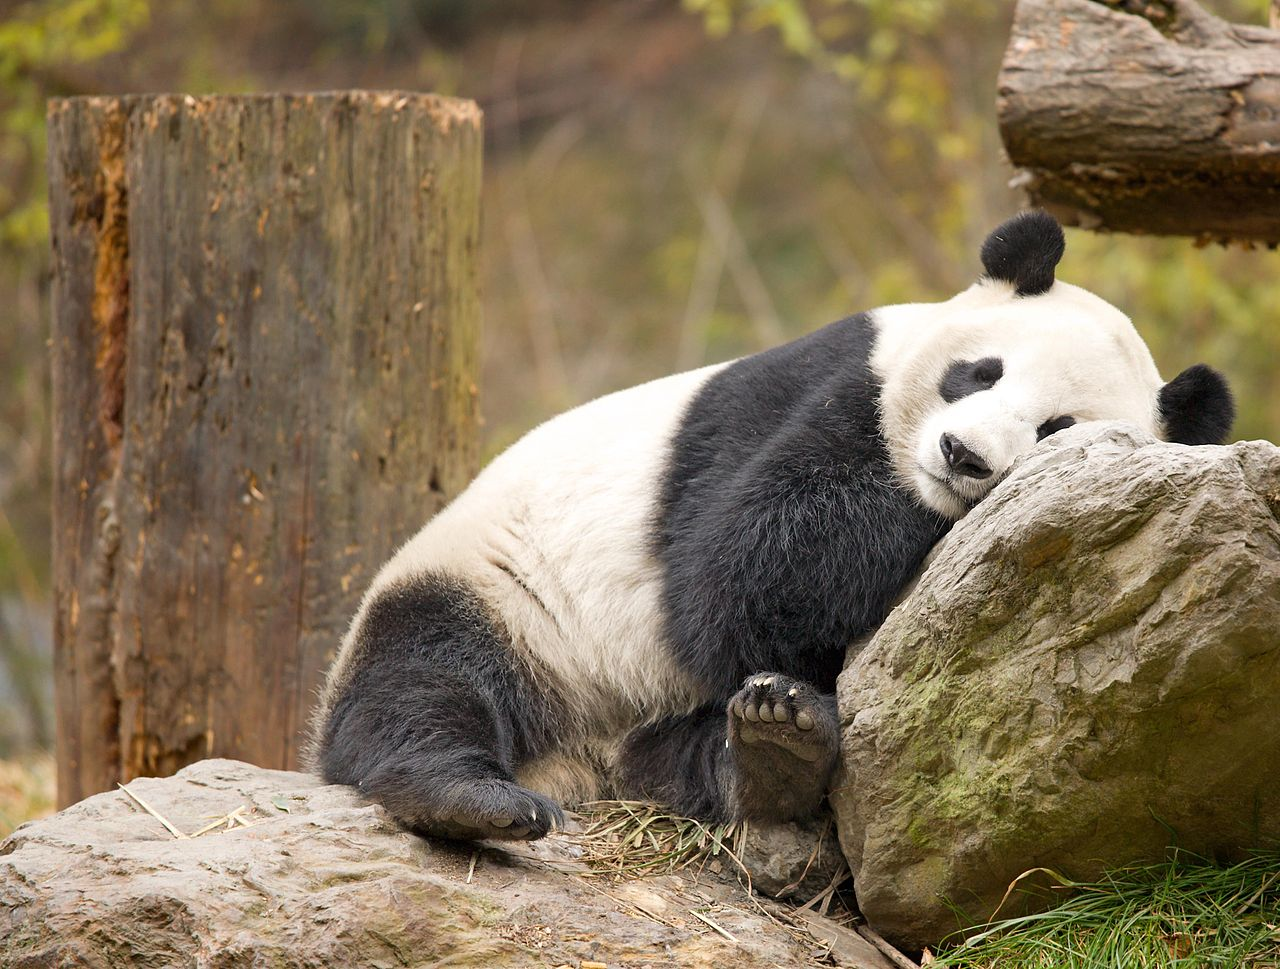 File:Pandas!! (GIANT PANDA-WOLONG-SICHUAN-CHINA ...